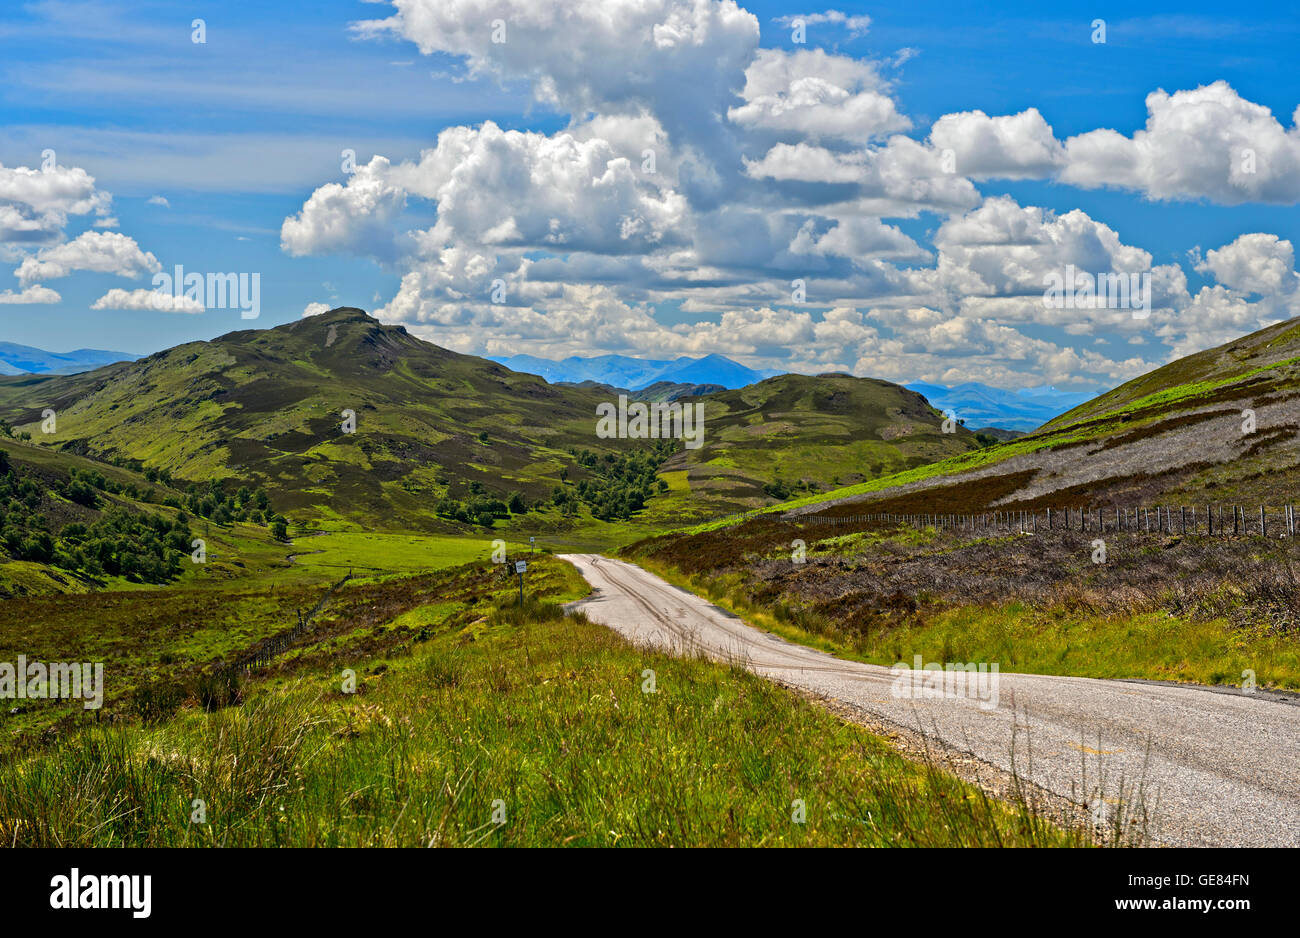 General Wade's Military Road on the south side of Loch Ness, Scotland, Great Britain - Stock Image